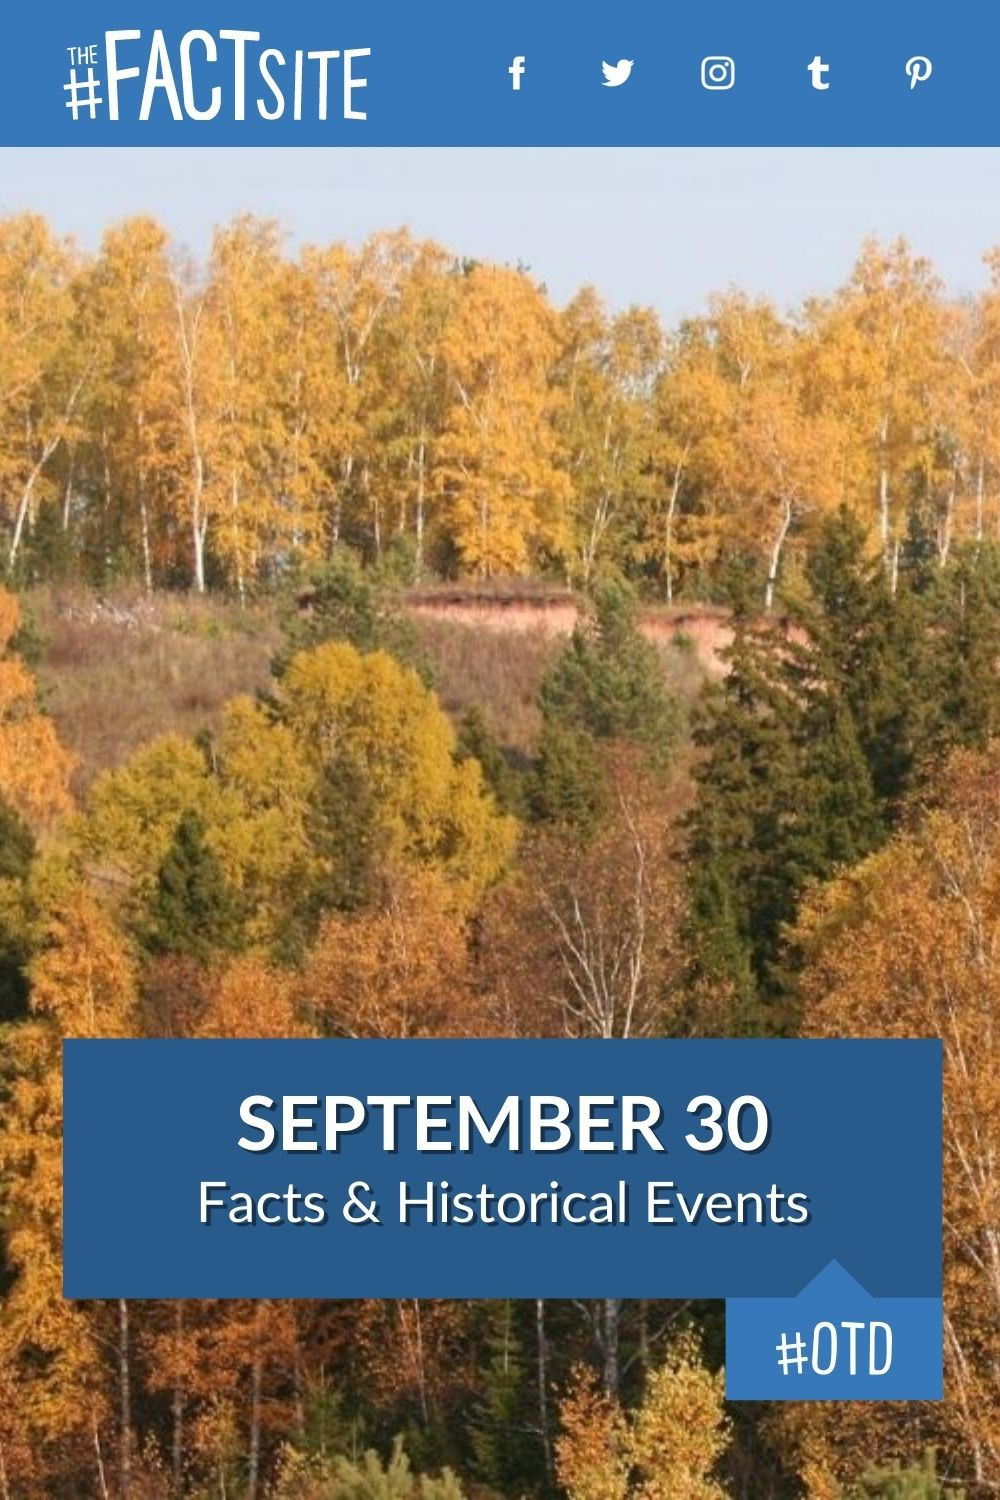 Facts & Historic Events That Happened on September 30